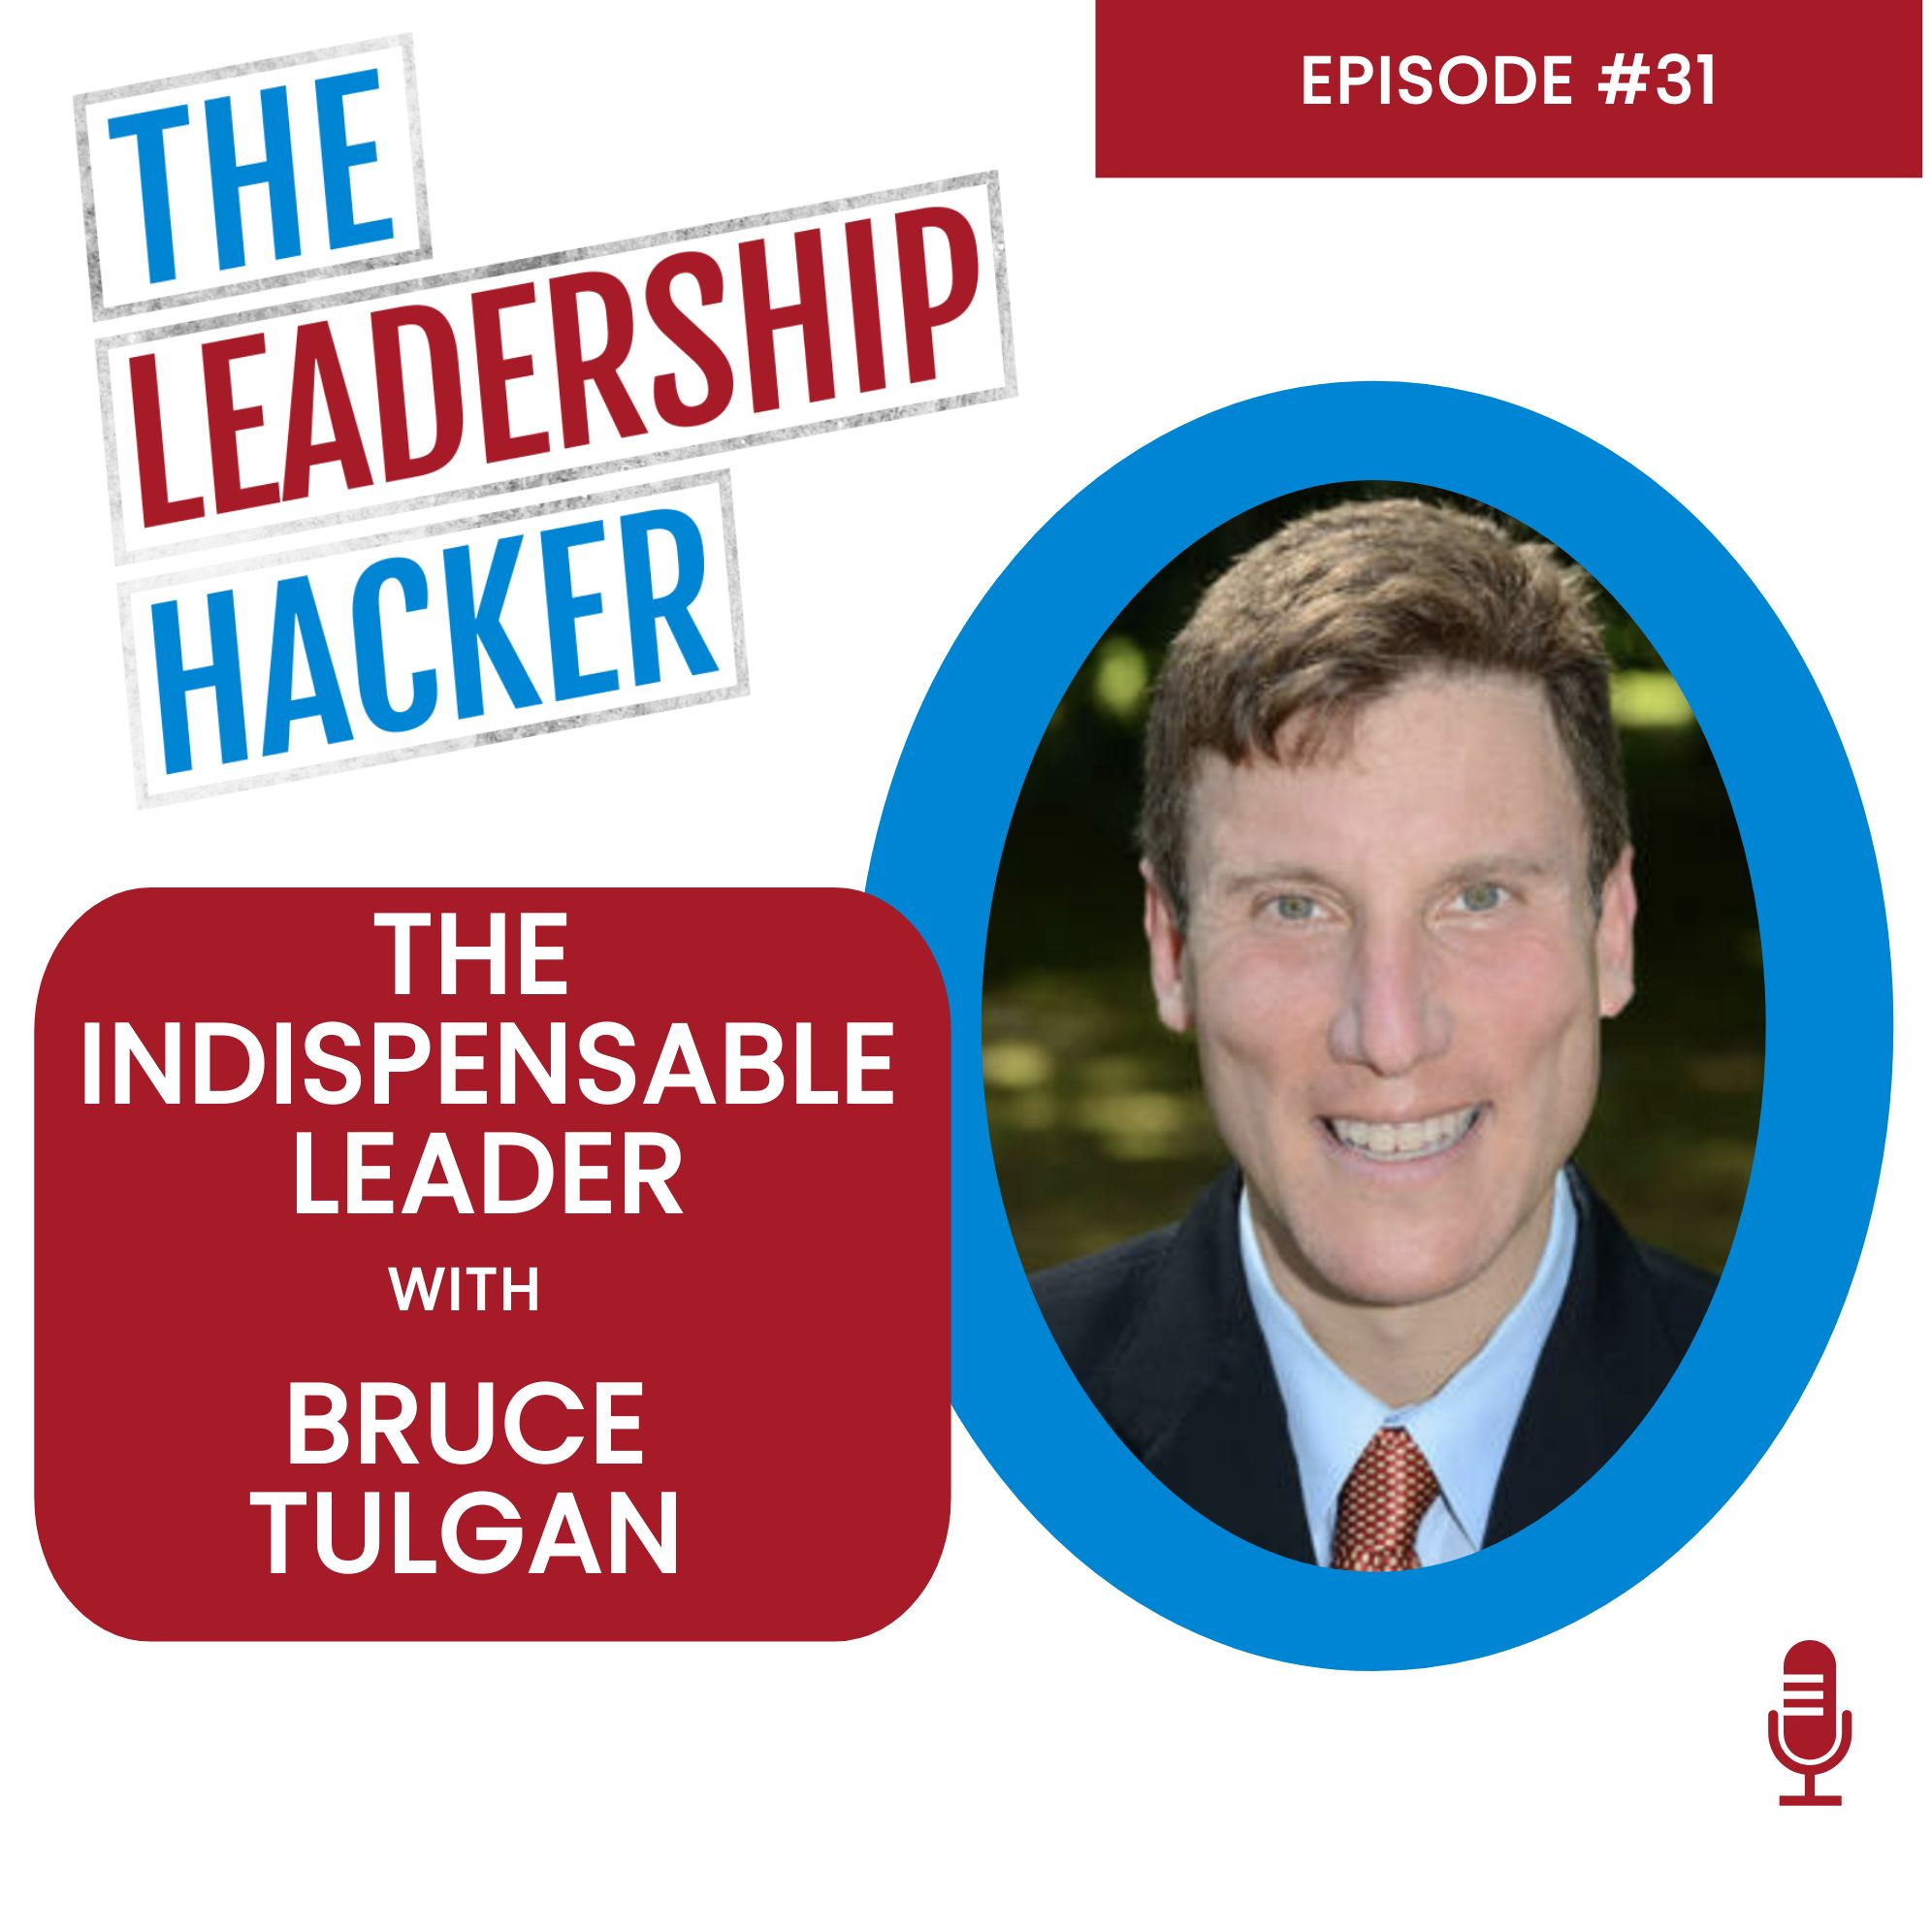 The Indispensable Leader with Bruce Tulgan